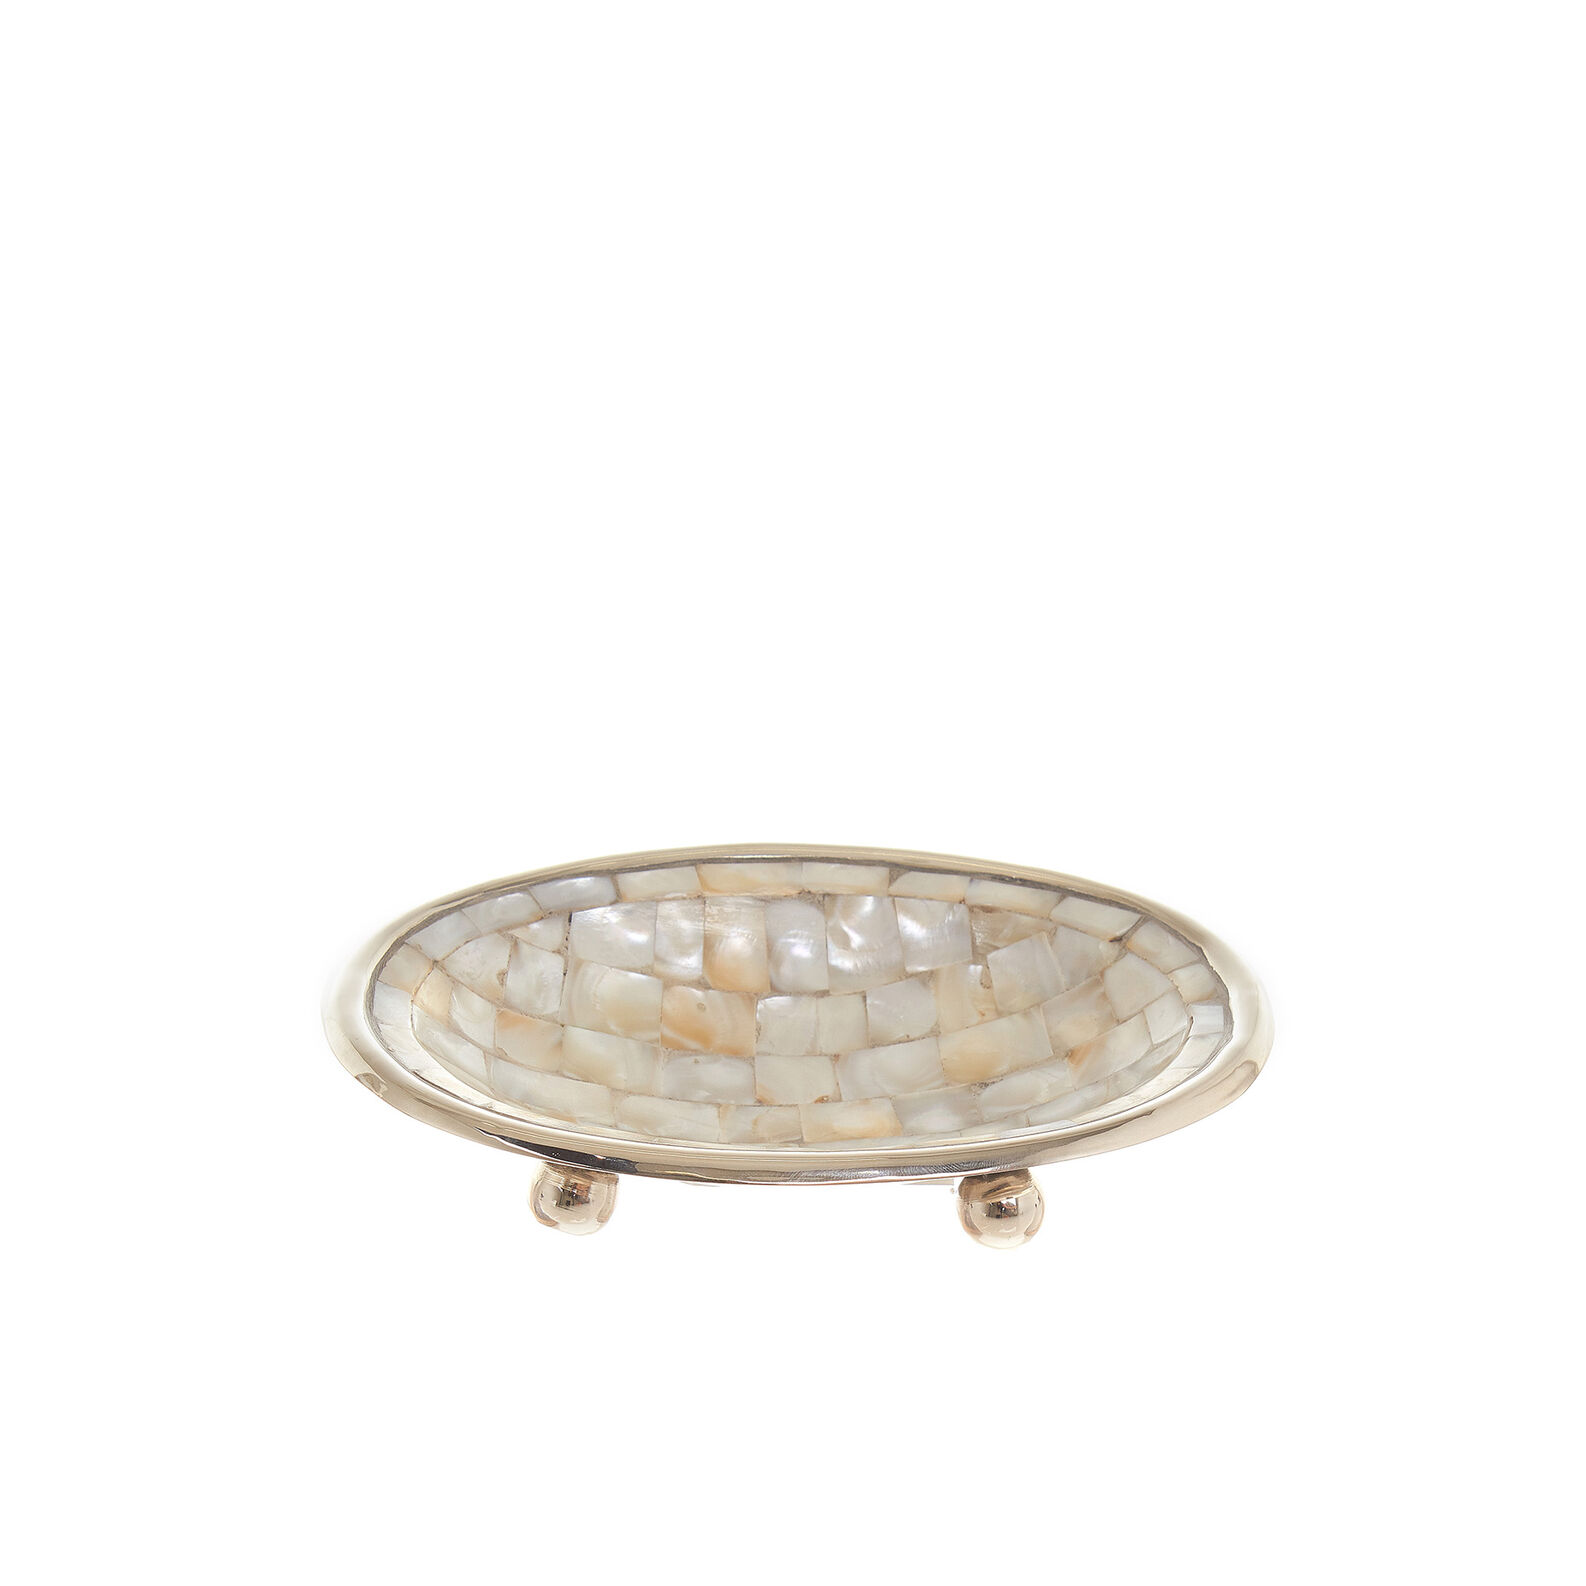 Mother-of-pearl mosaic soap dish